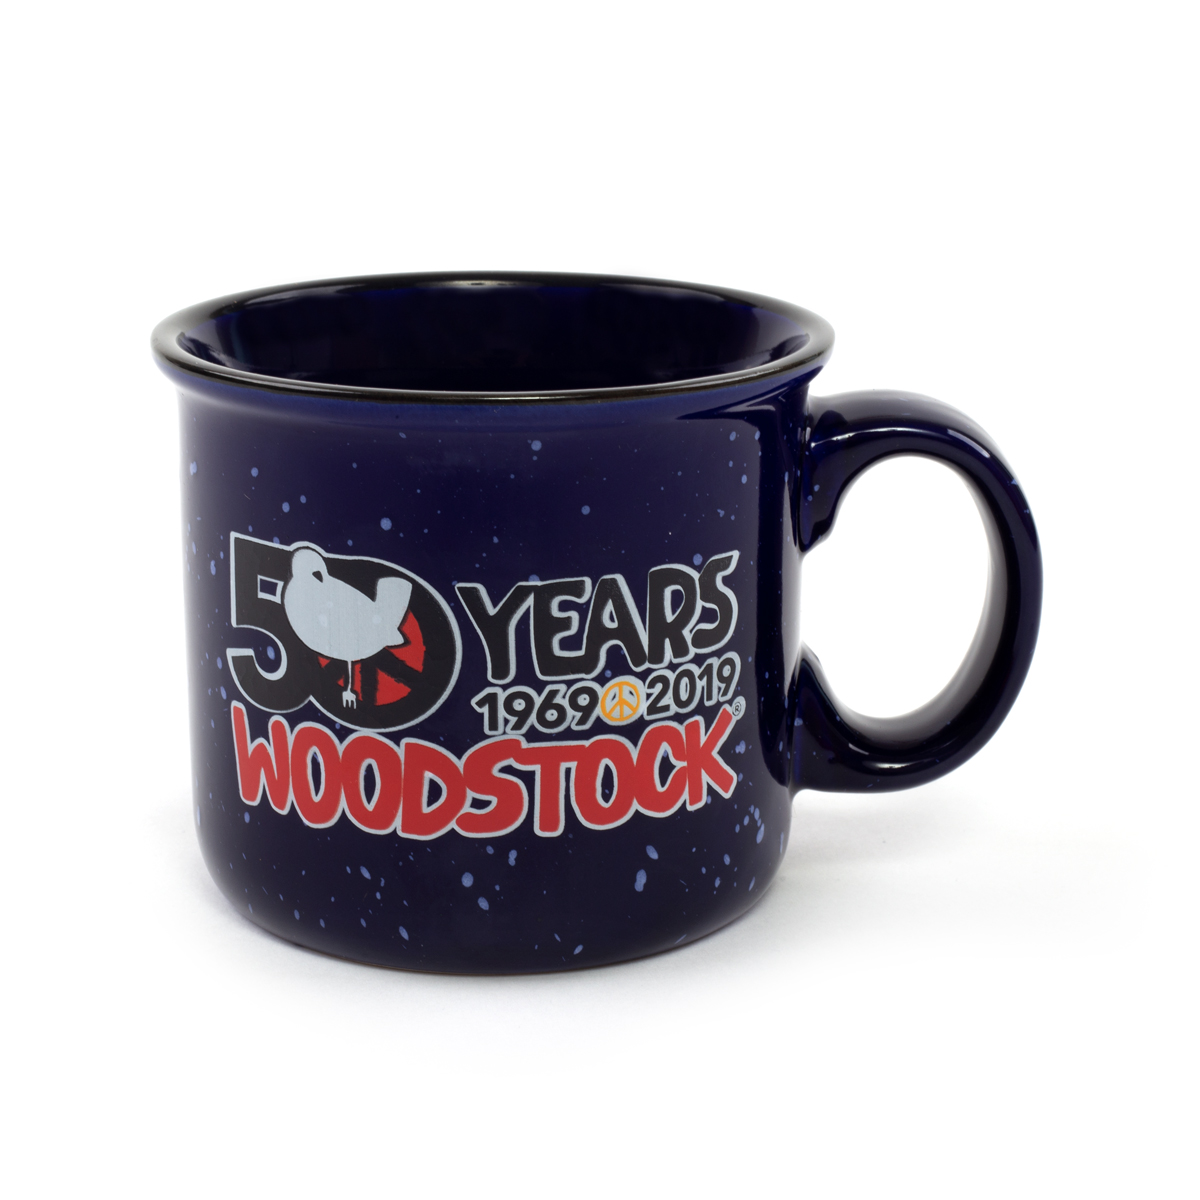 50 Years of Woodstock 1969-2019 Camp Mug